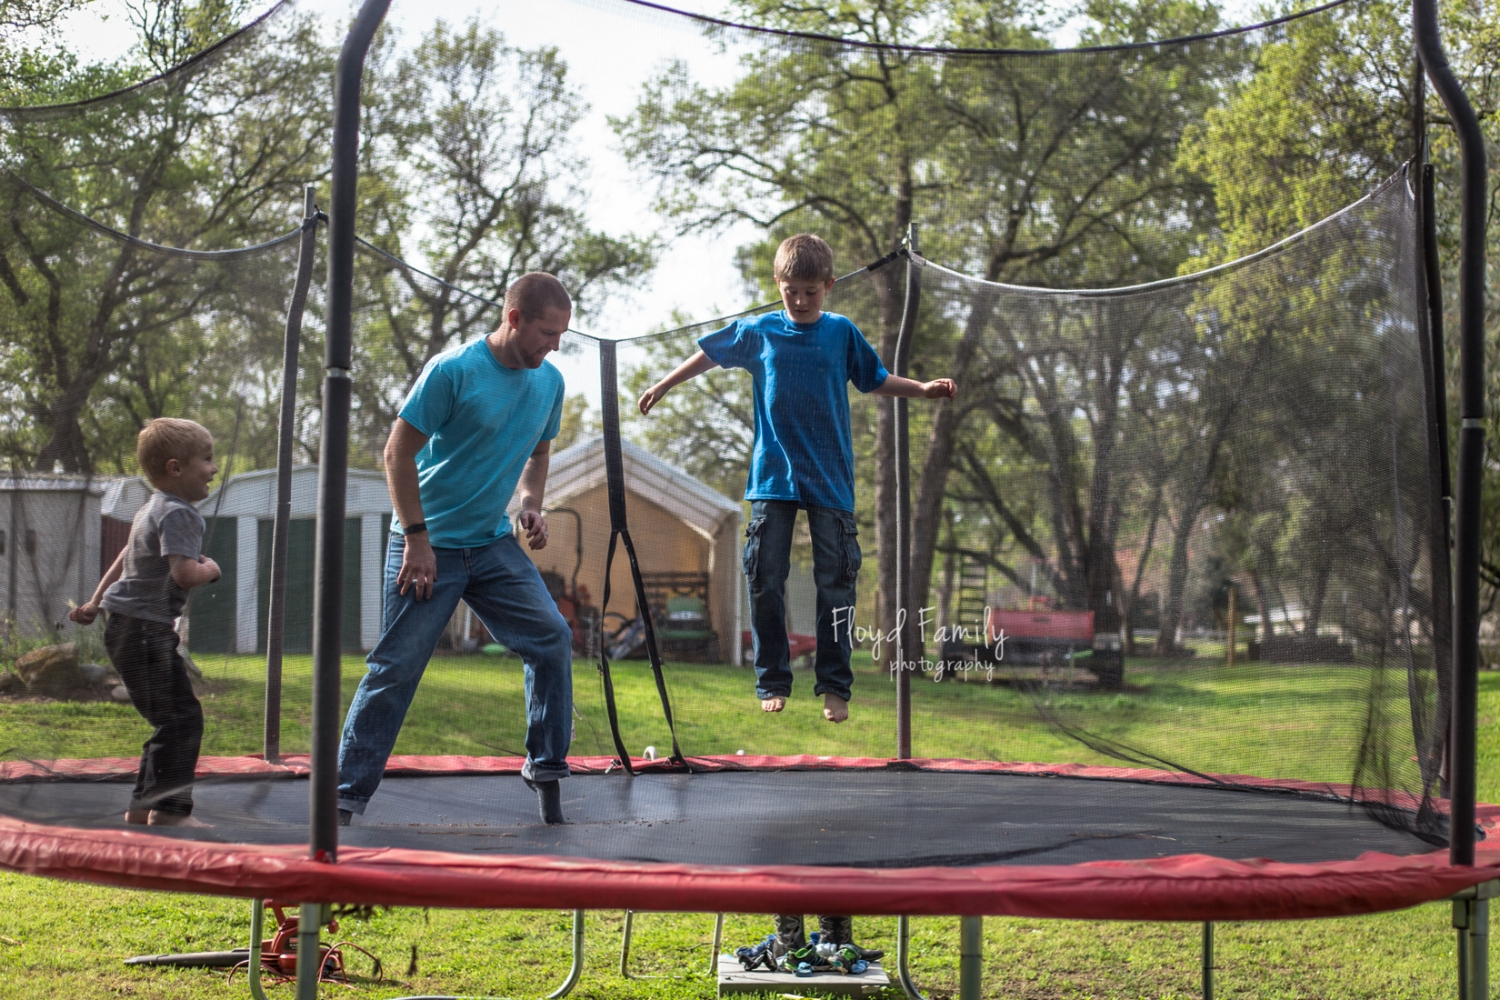 Two boys jumping really high with dad on the trampoline